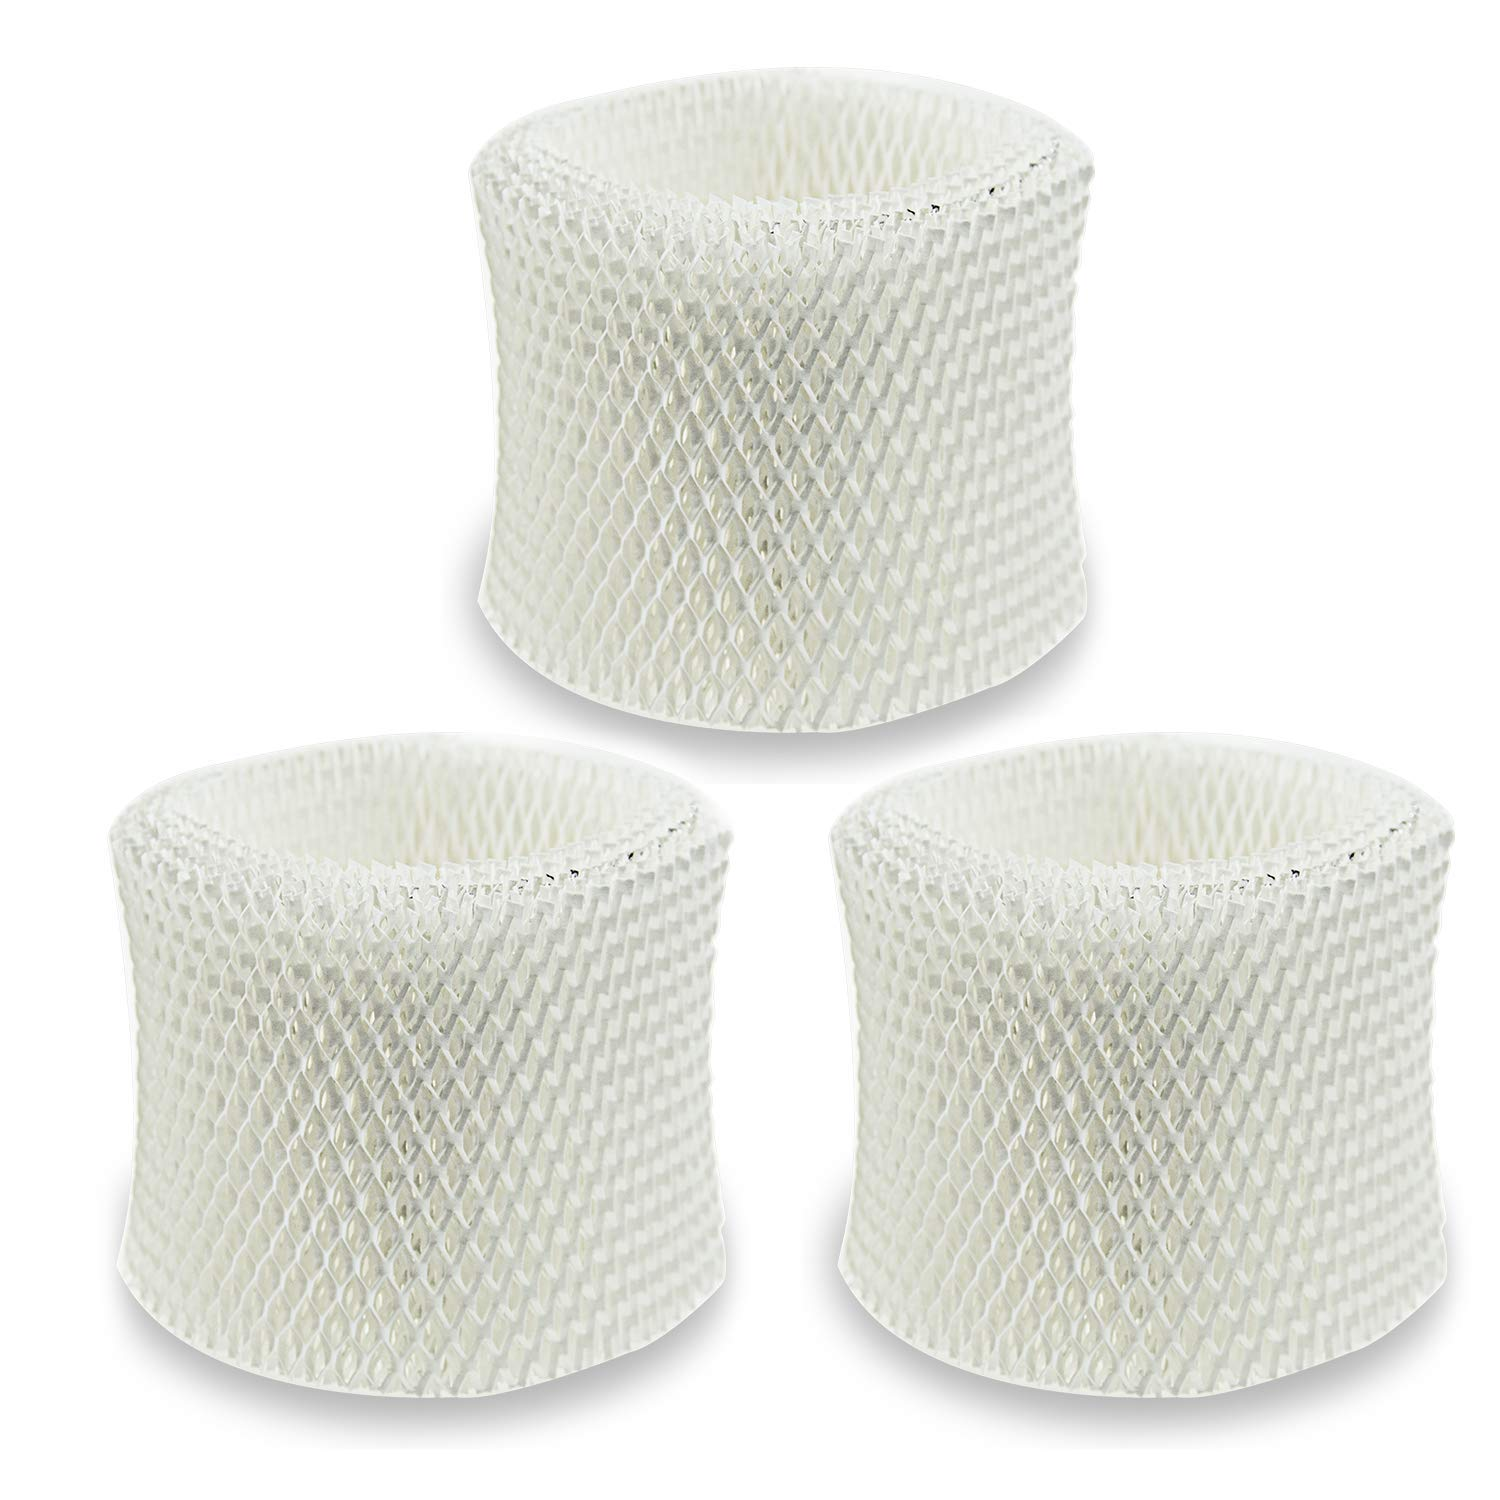 SKROS Humidifier Wicking Filters Compatible with Honeywell HCM-6009,HC-14V1,HC-14, HC-14N,HW-14. Filter E by SKROS